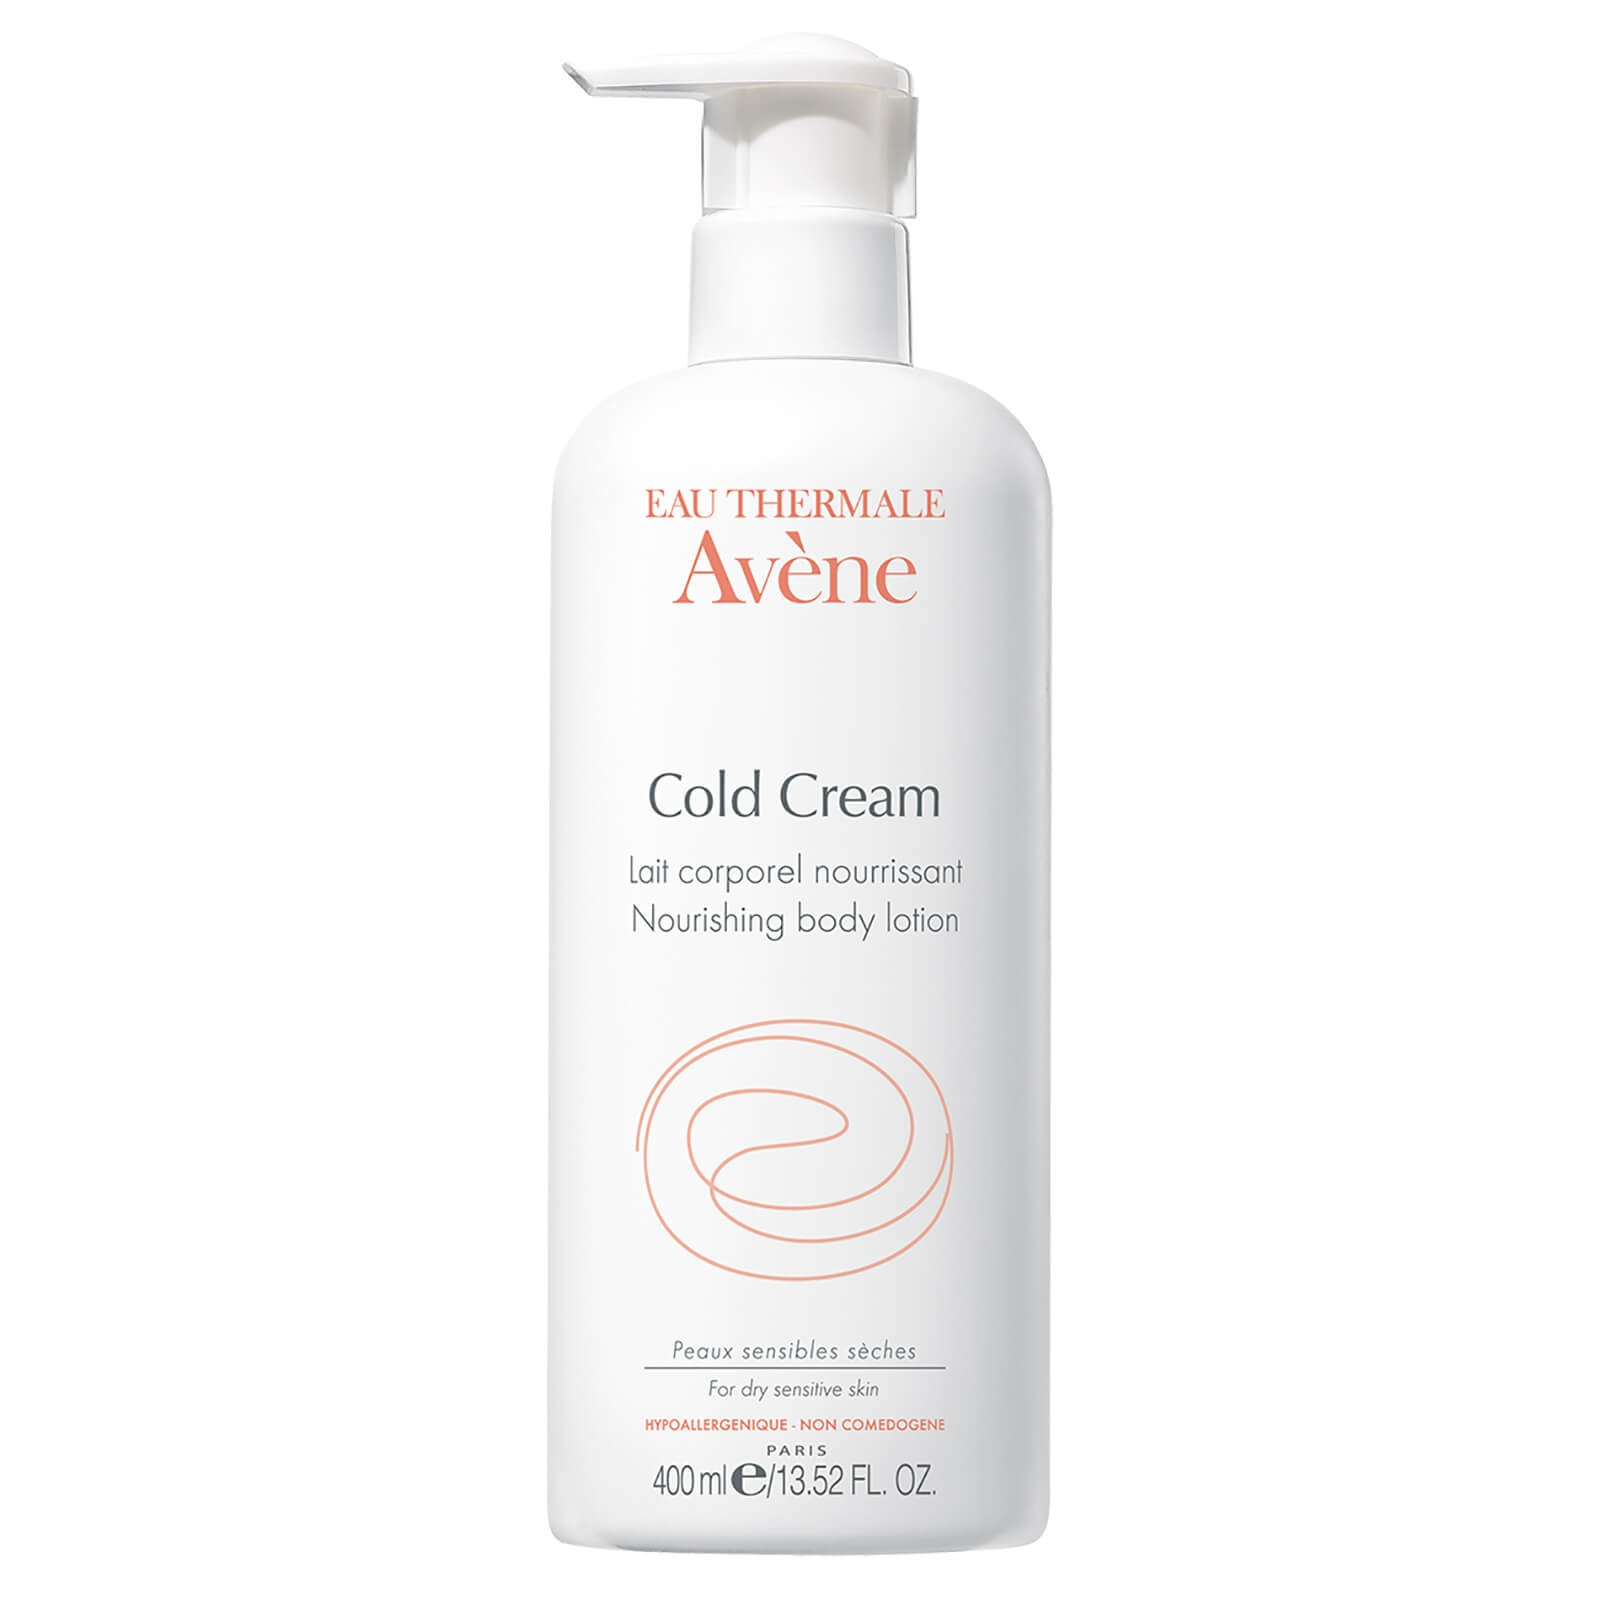 AVENE COLD CREAM BODY LOTION 400ML F740